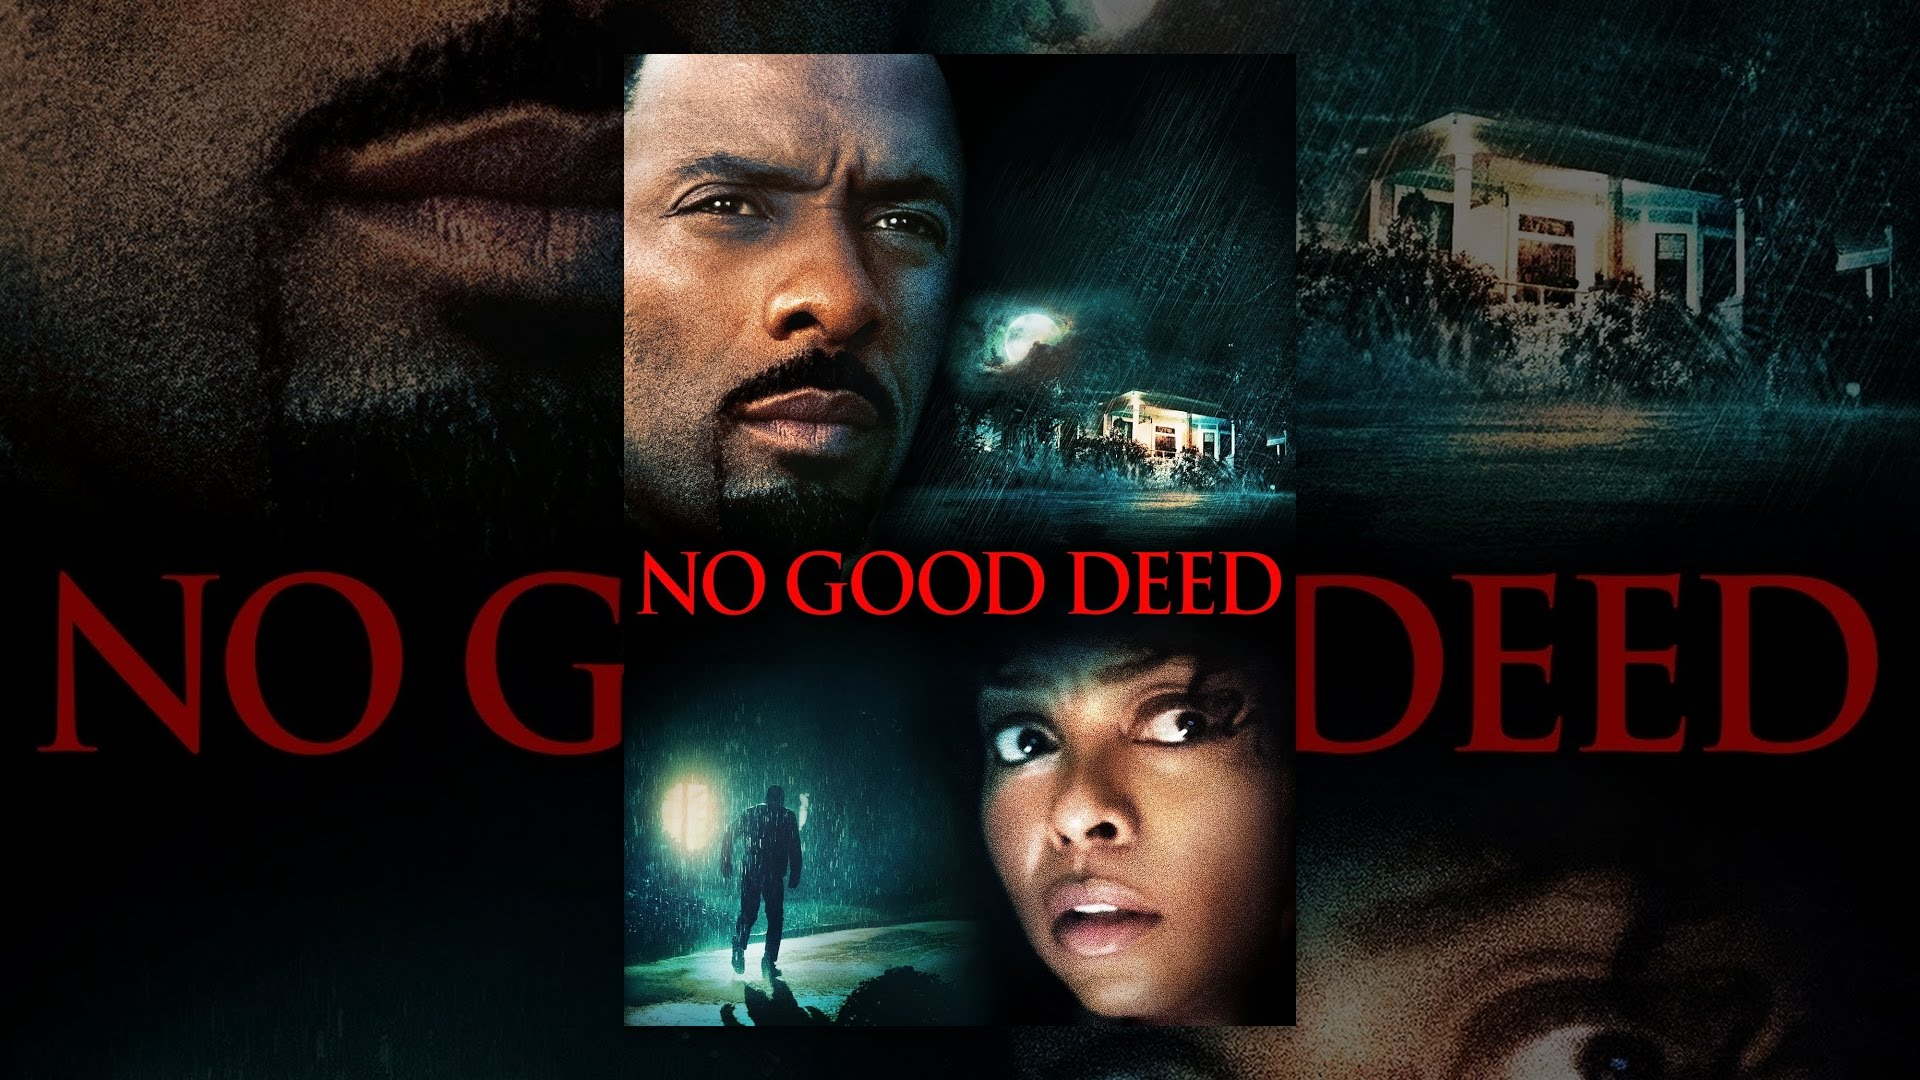 Where Can I Watch No Good Deed